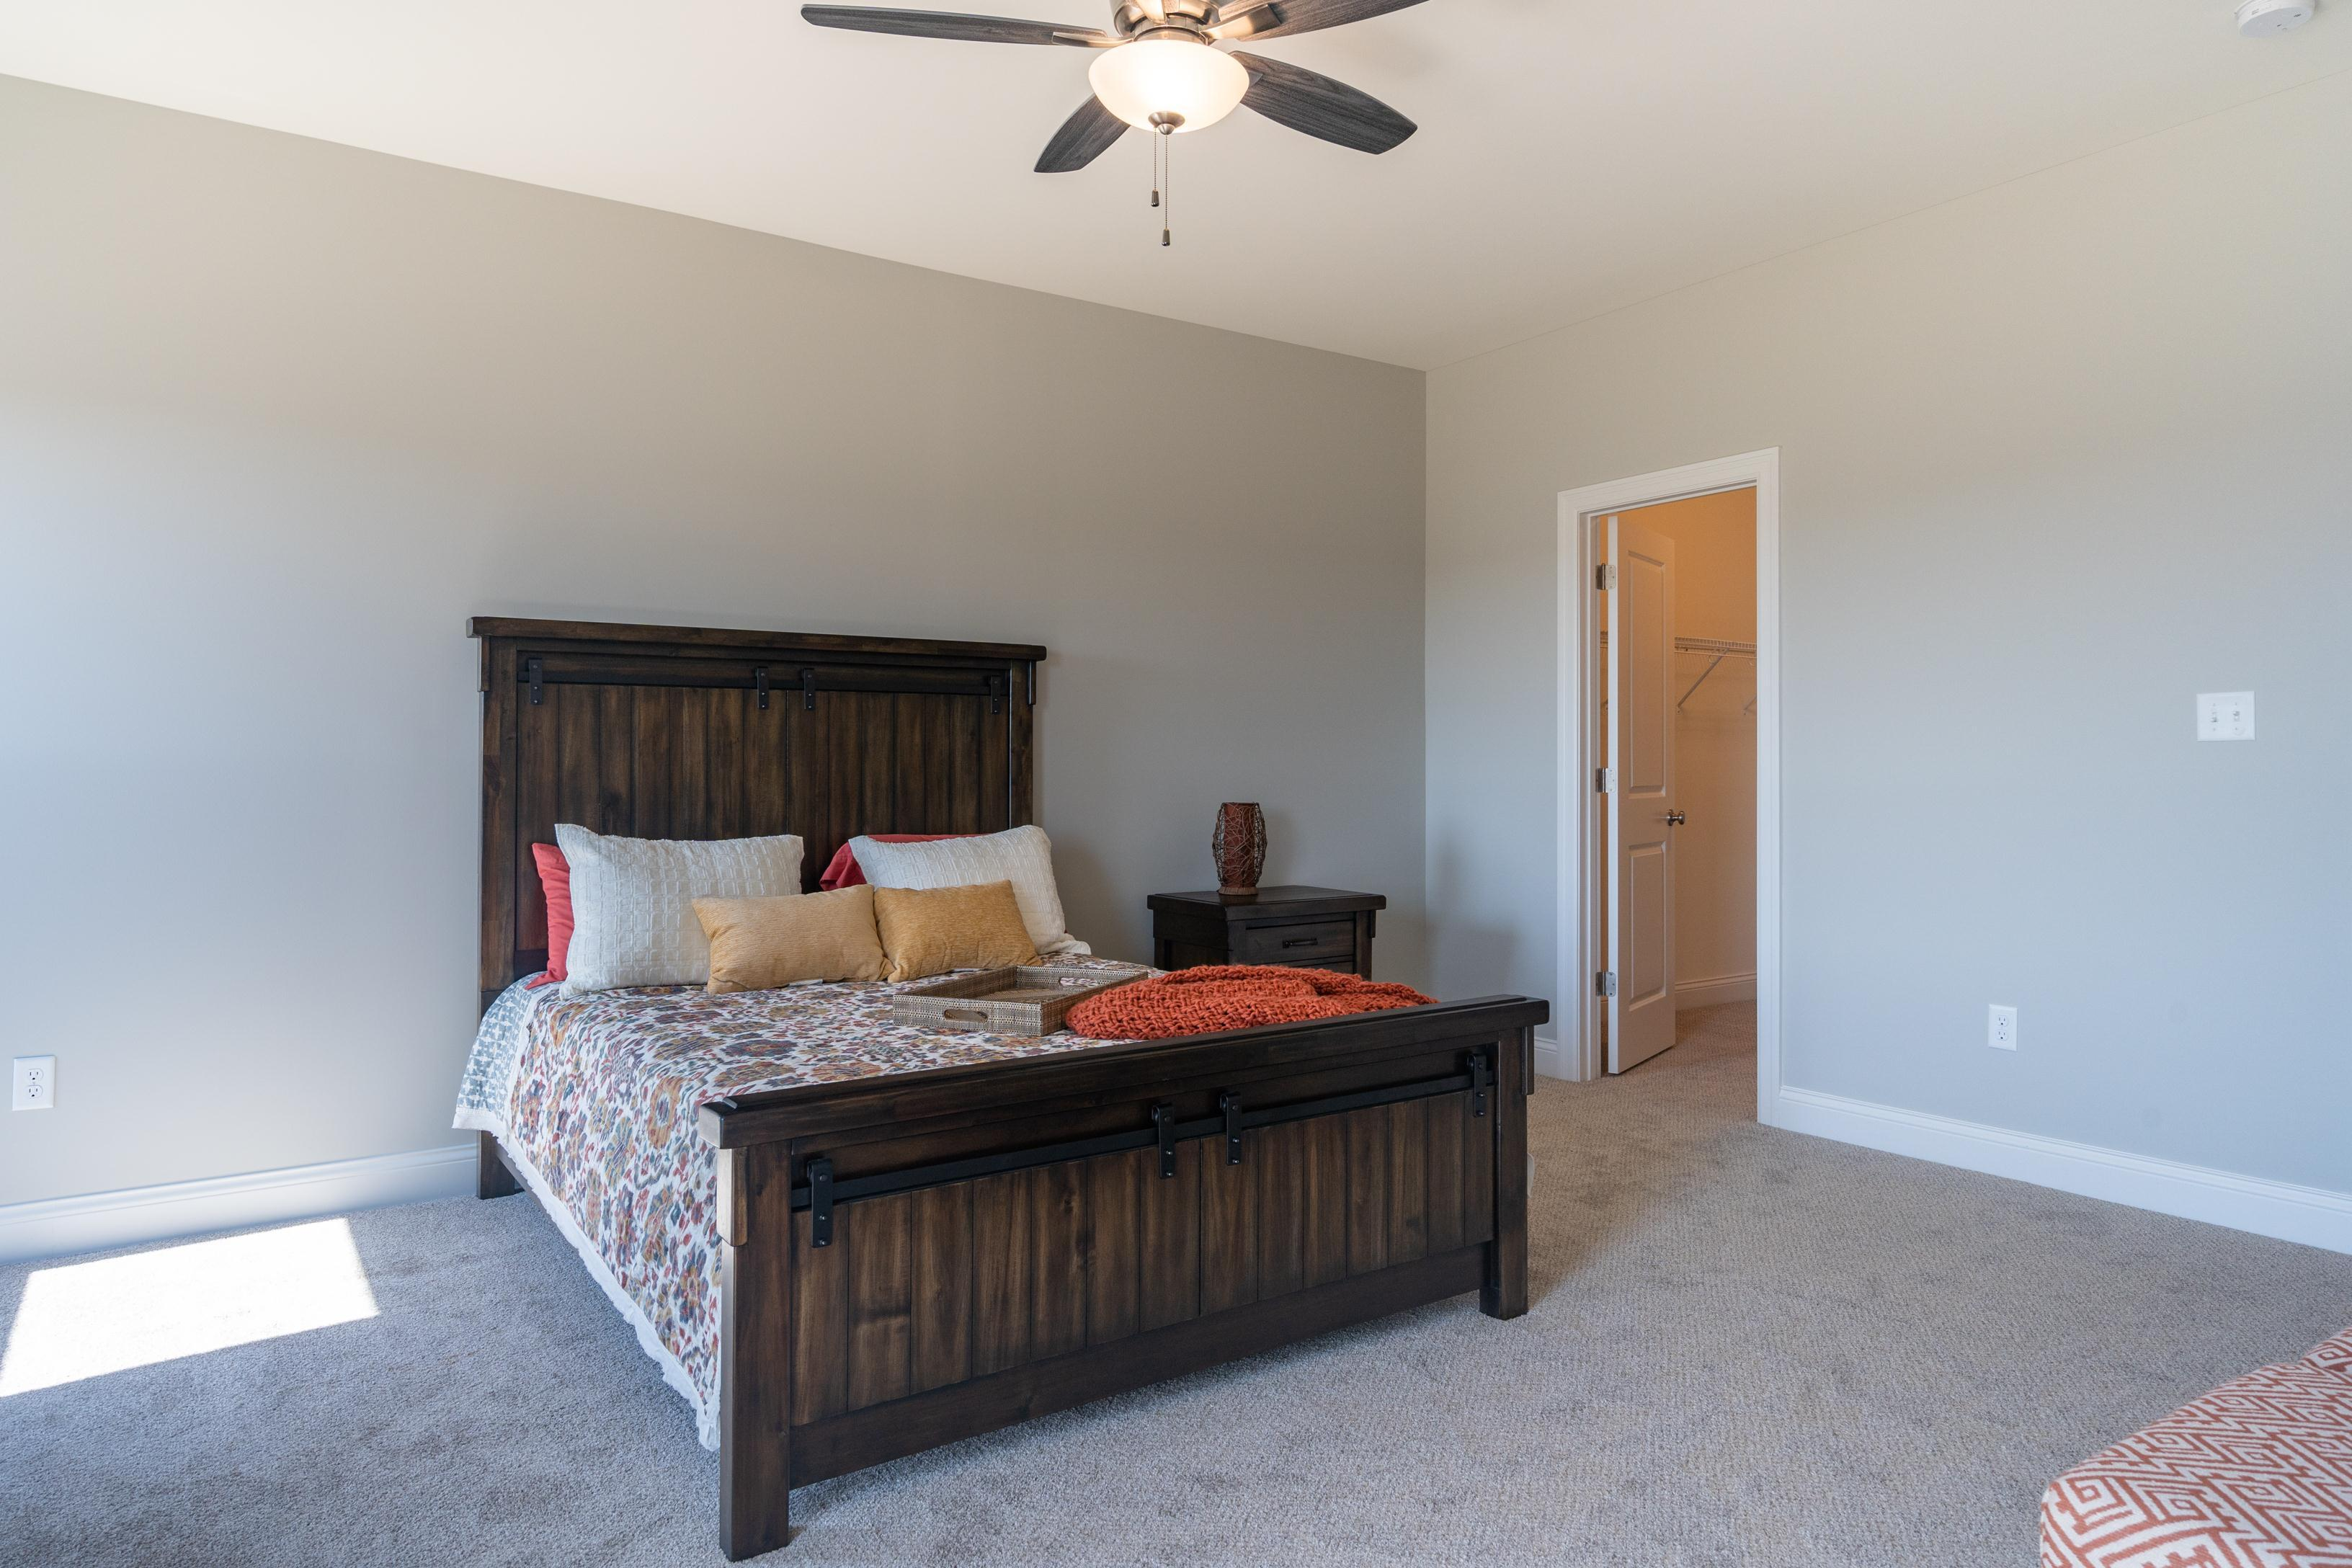 Bedroom featured in The Willow - 4 Car Garage By T.R. Hughes Homes in St. Louis, MO